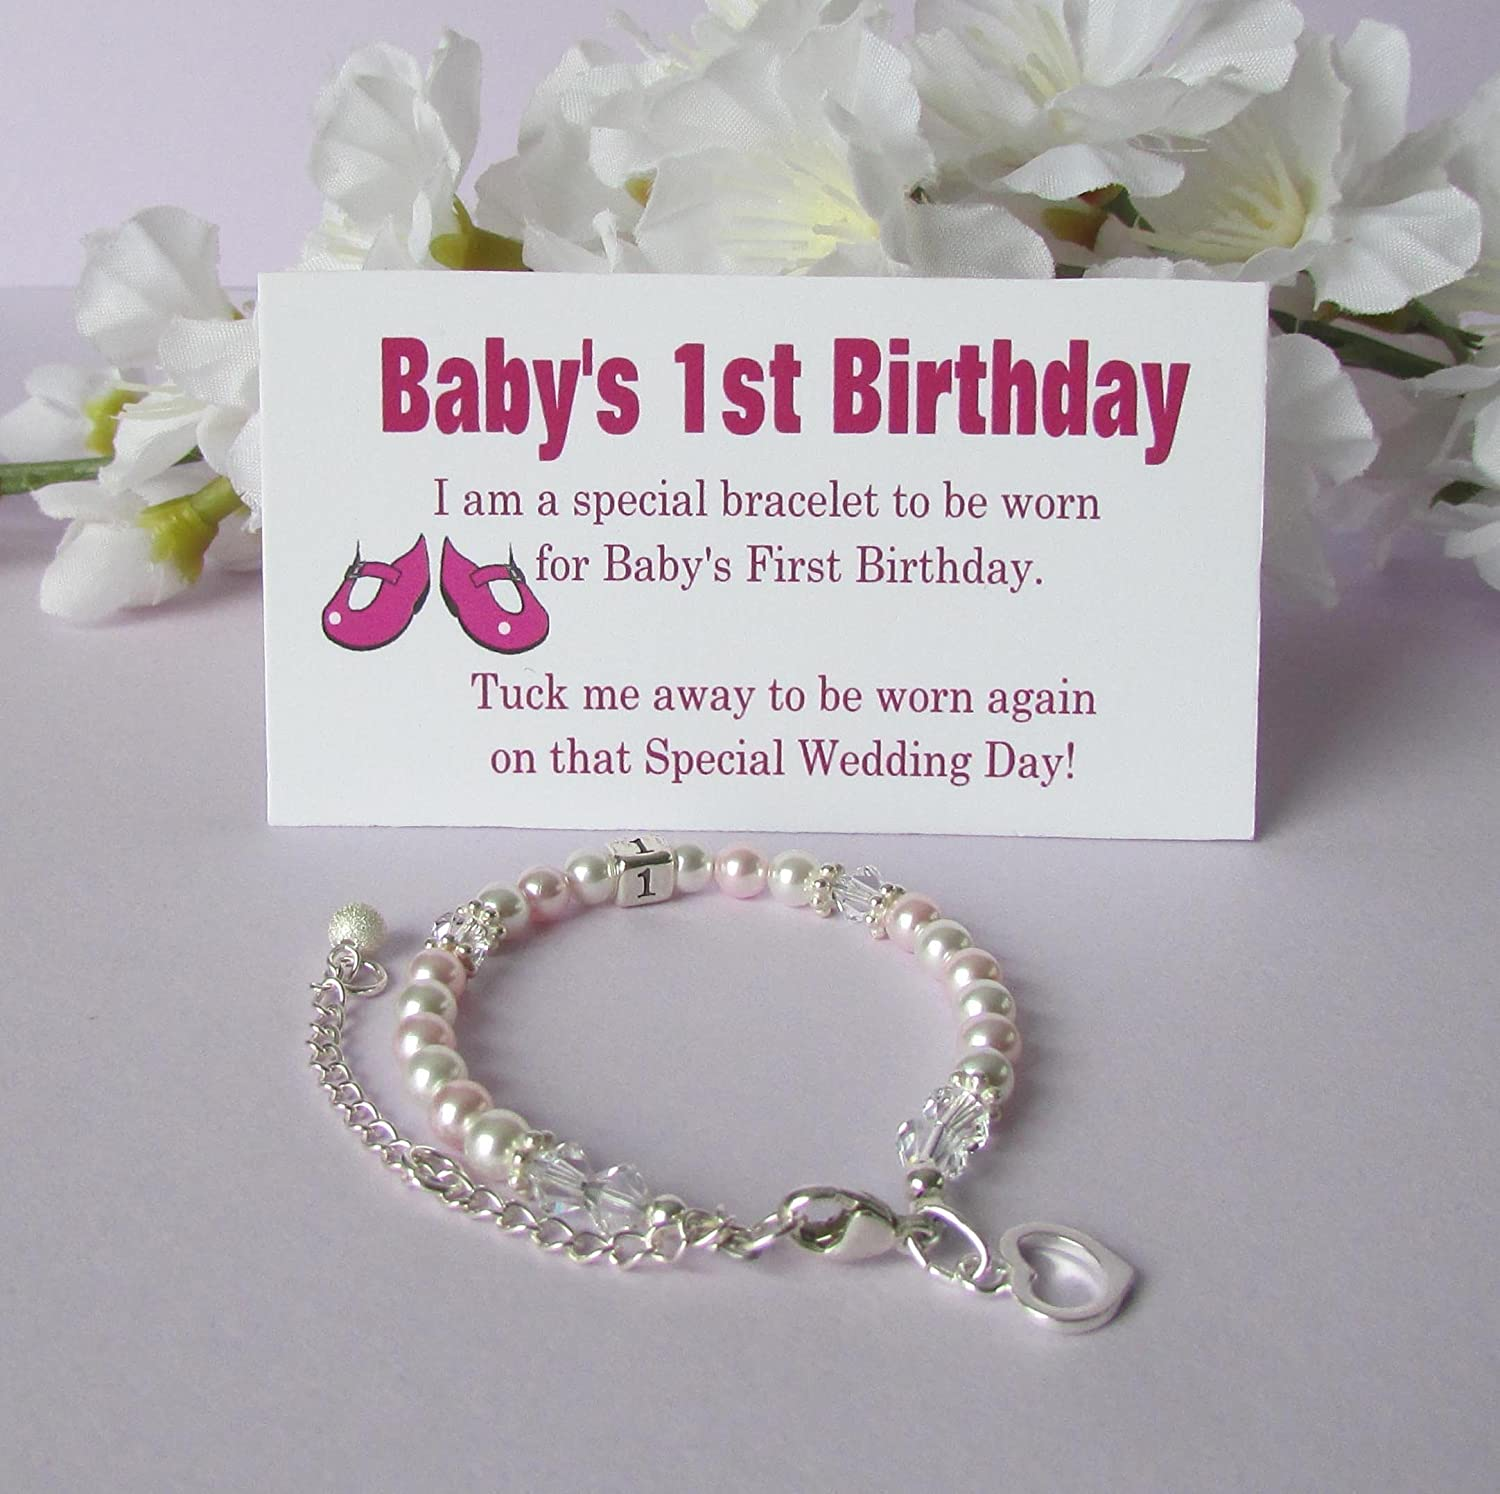 Little gils new jewellery for children first birthday gift ideas - Amazon Com Baby S 1st Birthday Gift Bracelet Baby To Bride Growing With Baby Handmade